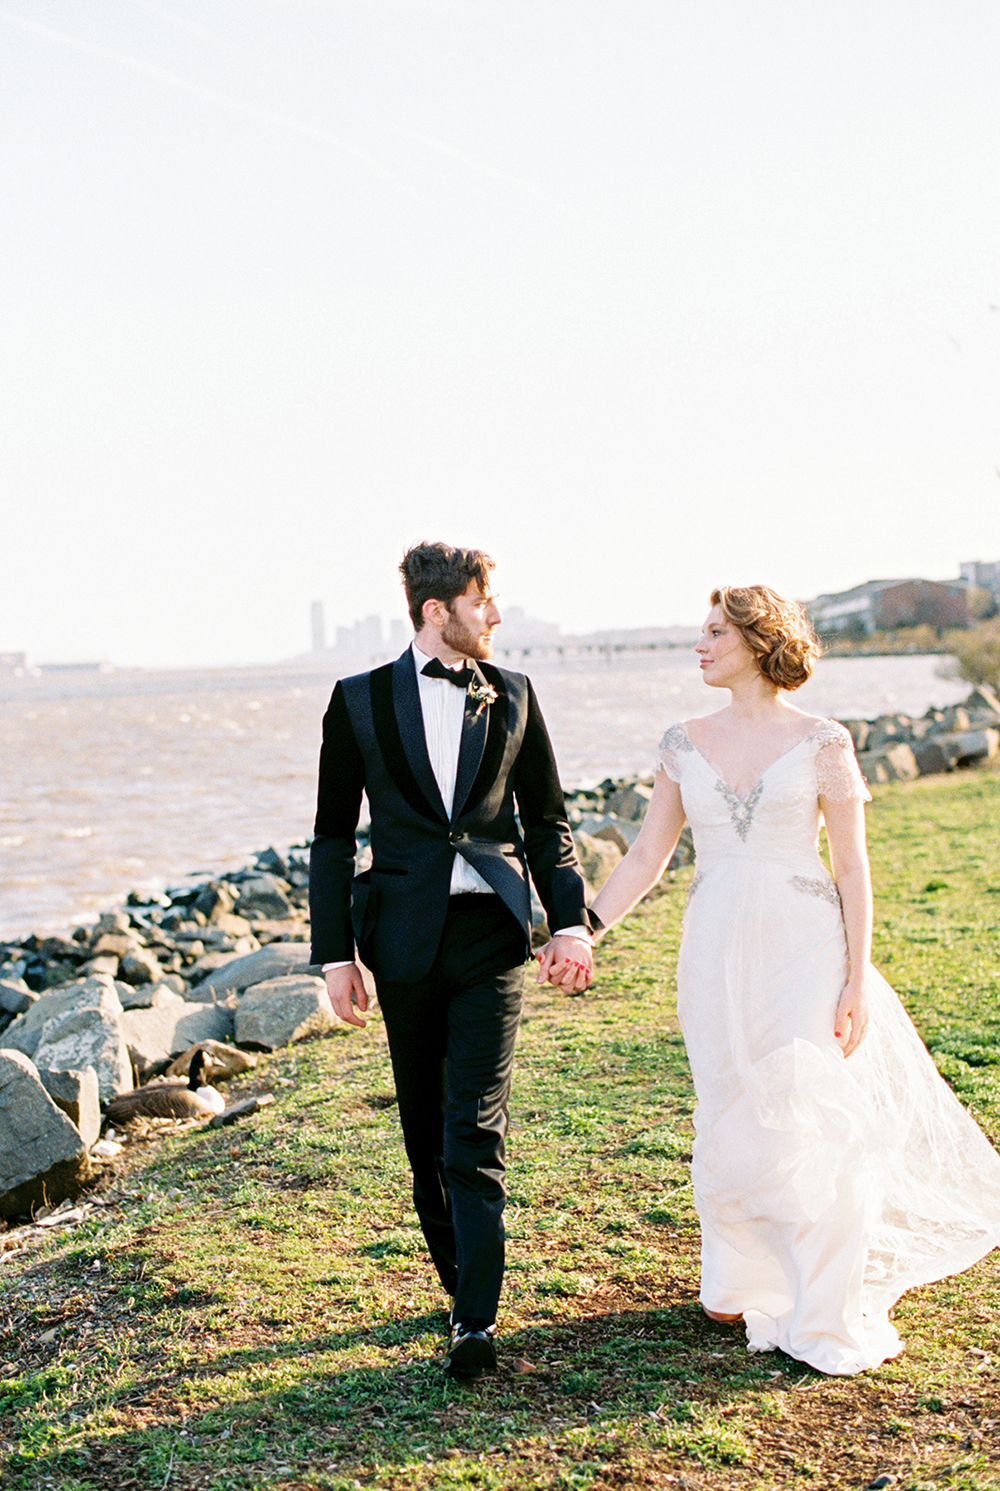 For the Love of Copper Wedding Inspiration - photo by Alexis June Weddings http://ruffledblog.com/for-the-love-of-copper-wedding-inspiration